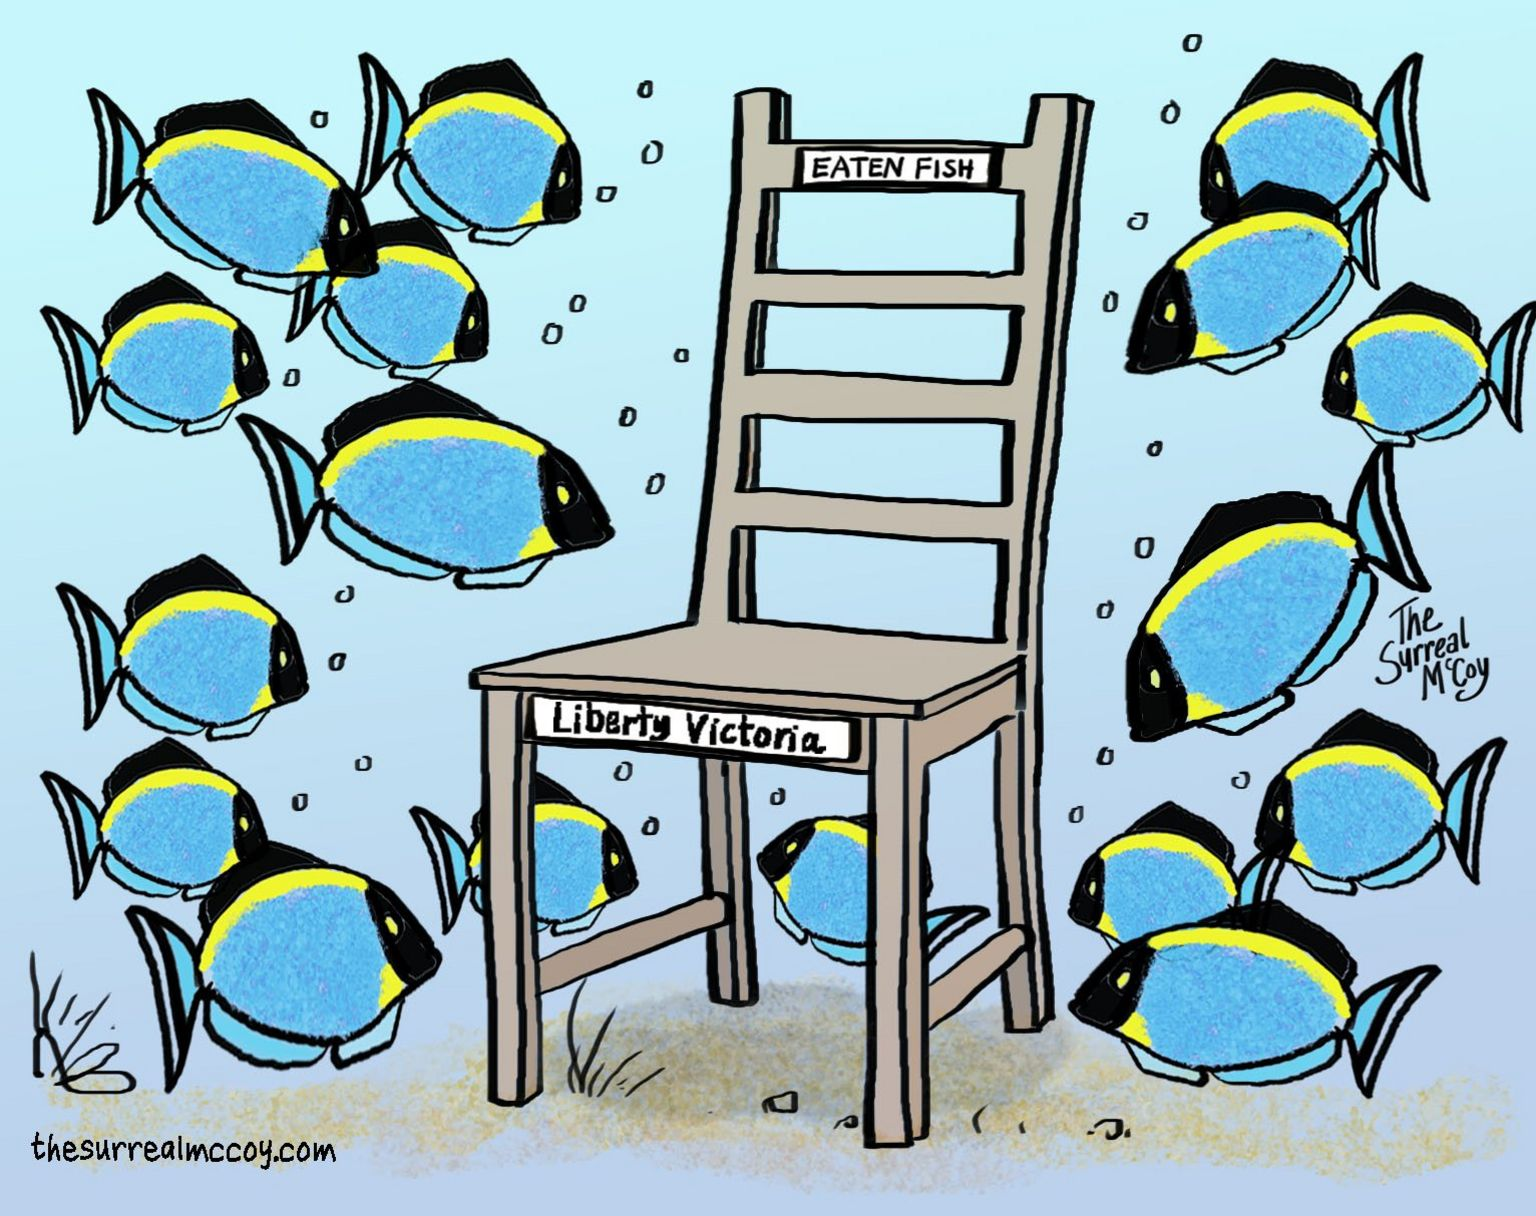 Cartoon showing fishes around an empty chair